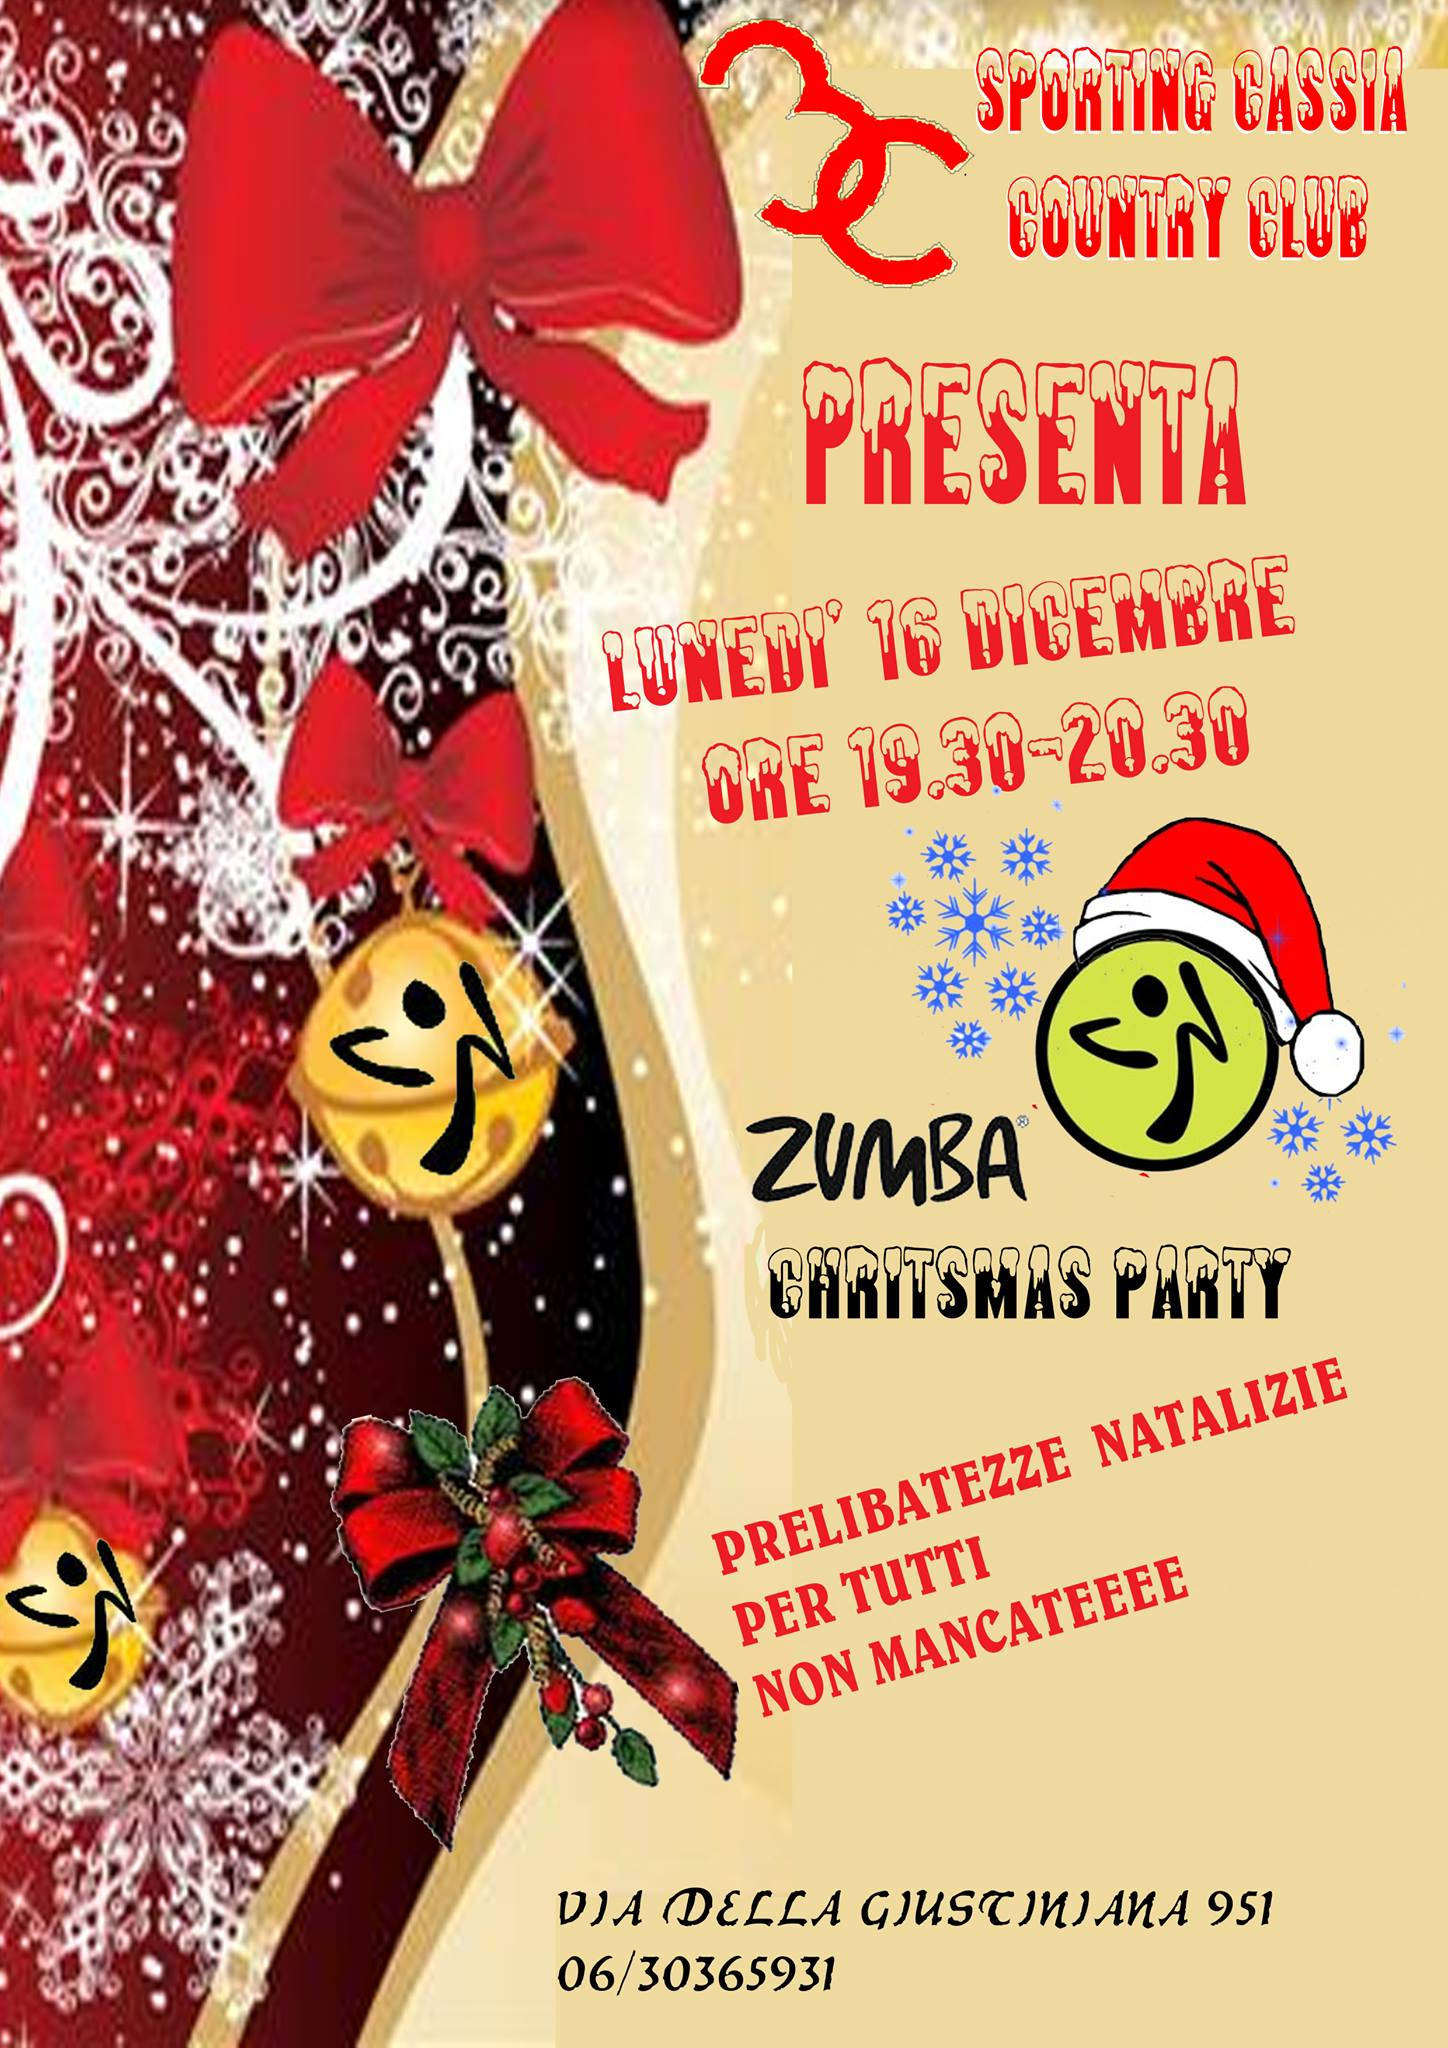 ZUMBA CHRISTMAS PARTY | Sporting Cassia 3C